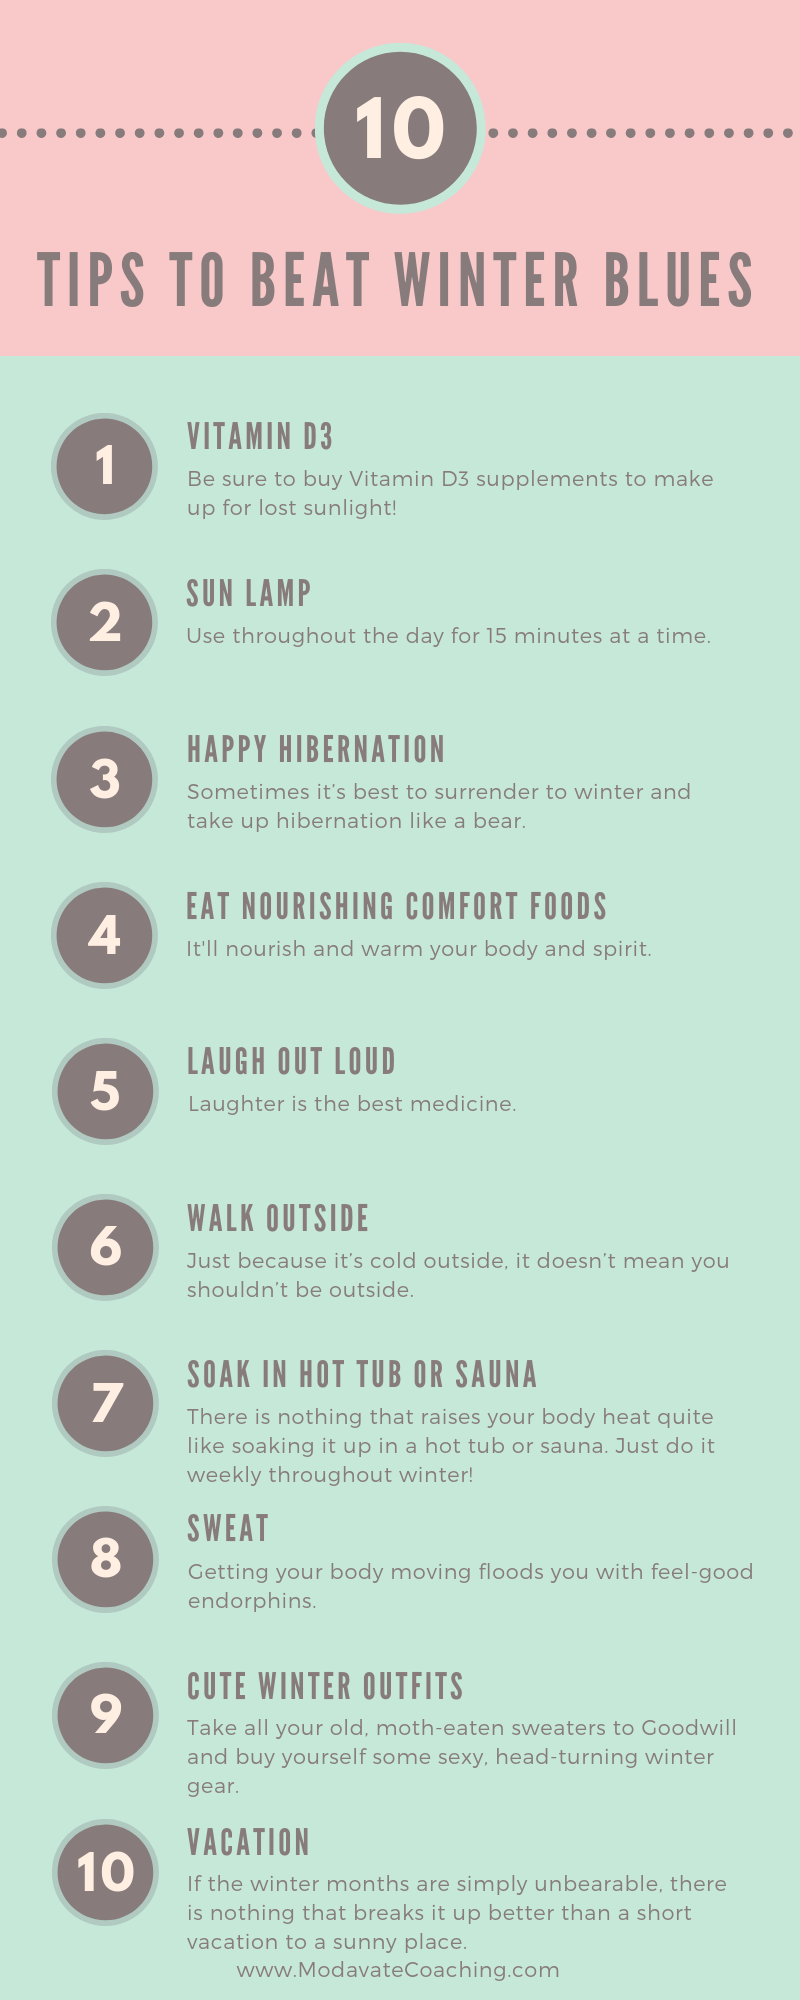 Beating Winter Blues >> 10 Tips To Beat The Winter Blues Modavate Coaching Wellness